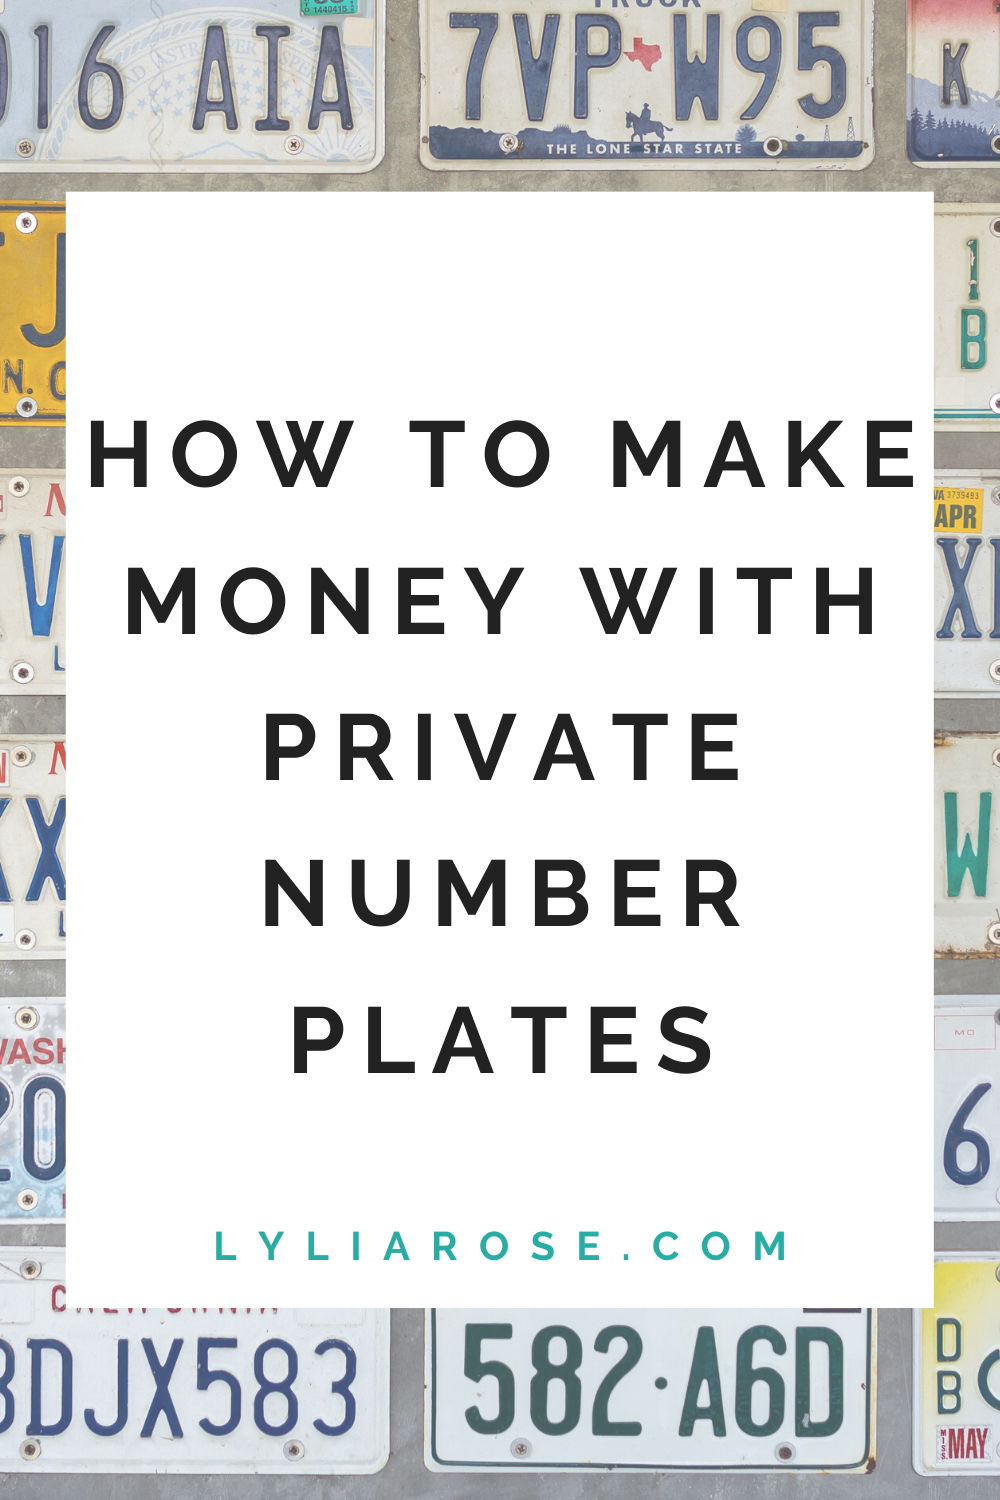 How to make money with private number plates